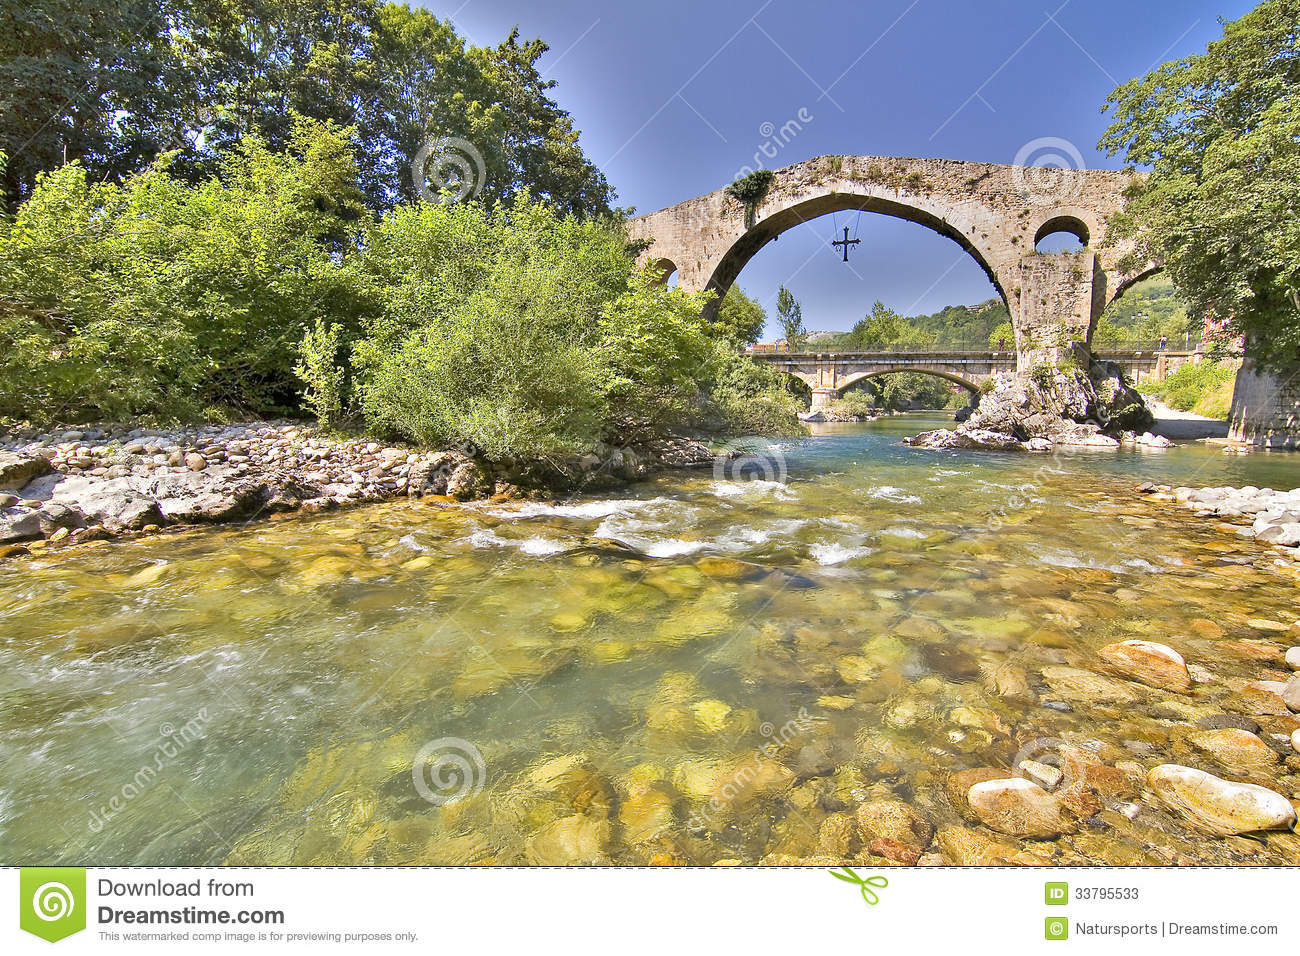 Cangas Spain  city photos gallery : Roman Bridge of Cangas de Onis, Asturias, Spain. HDR picture.